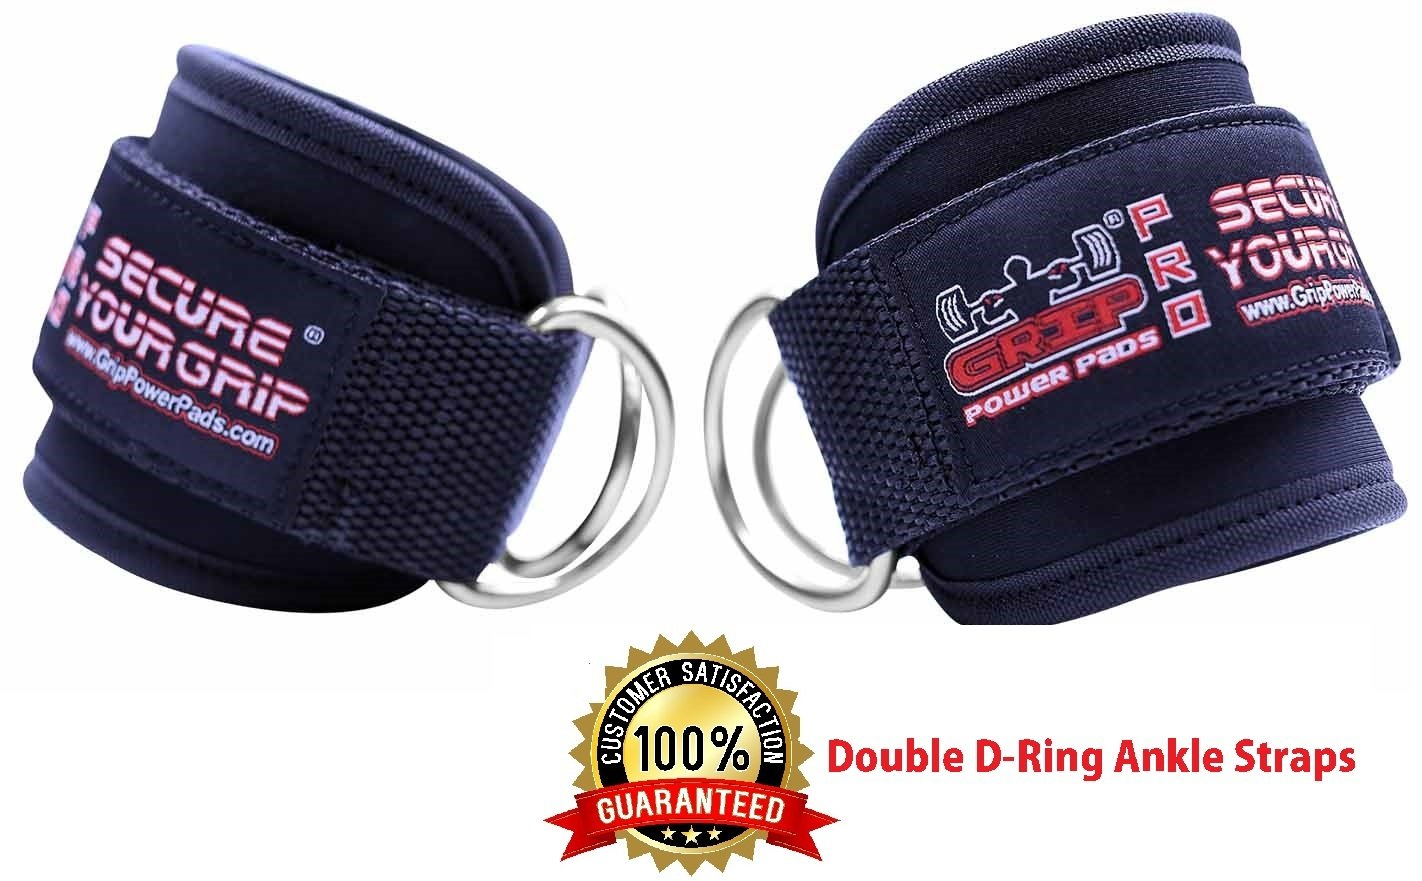 Ankle Straps for Cable Machines Double D-Ring Adjustable Neoprene Premium Cuffs to Enhance Legs, Abs & Glutes For Men & Women